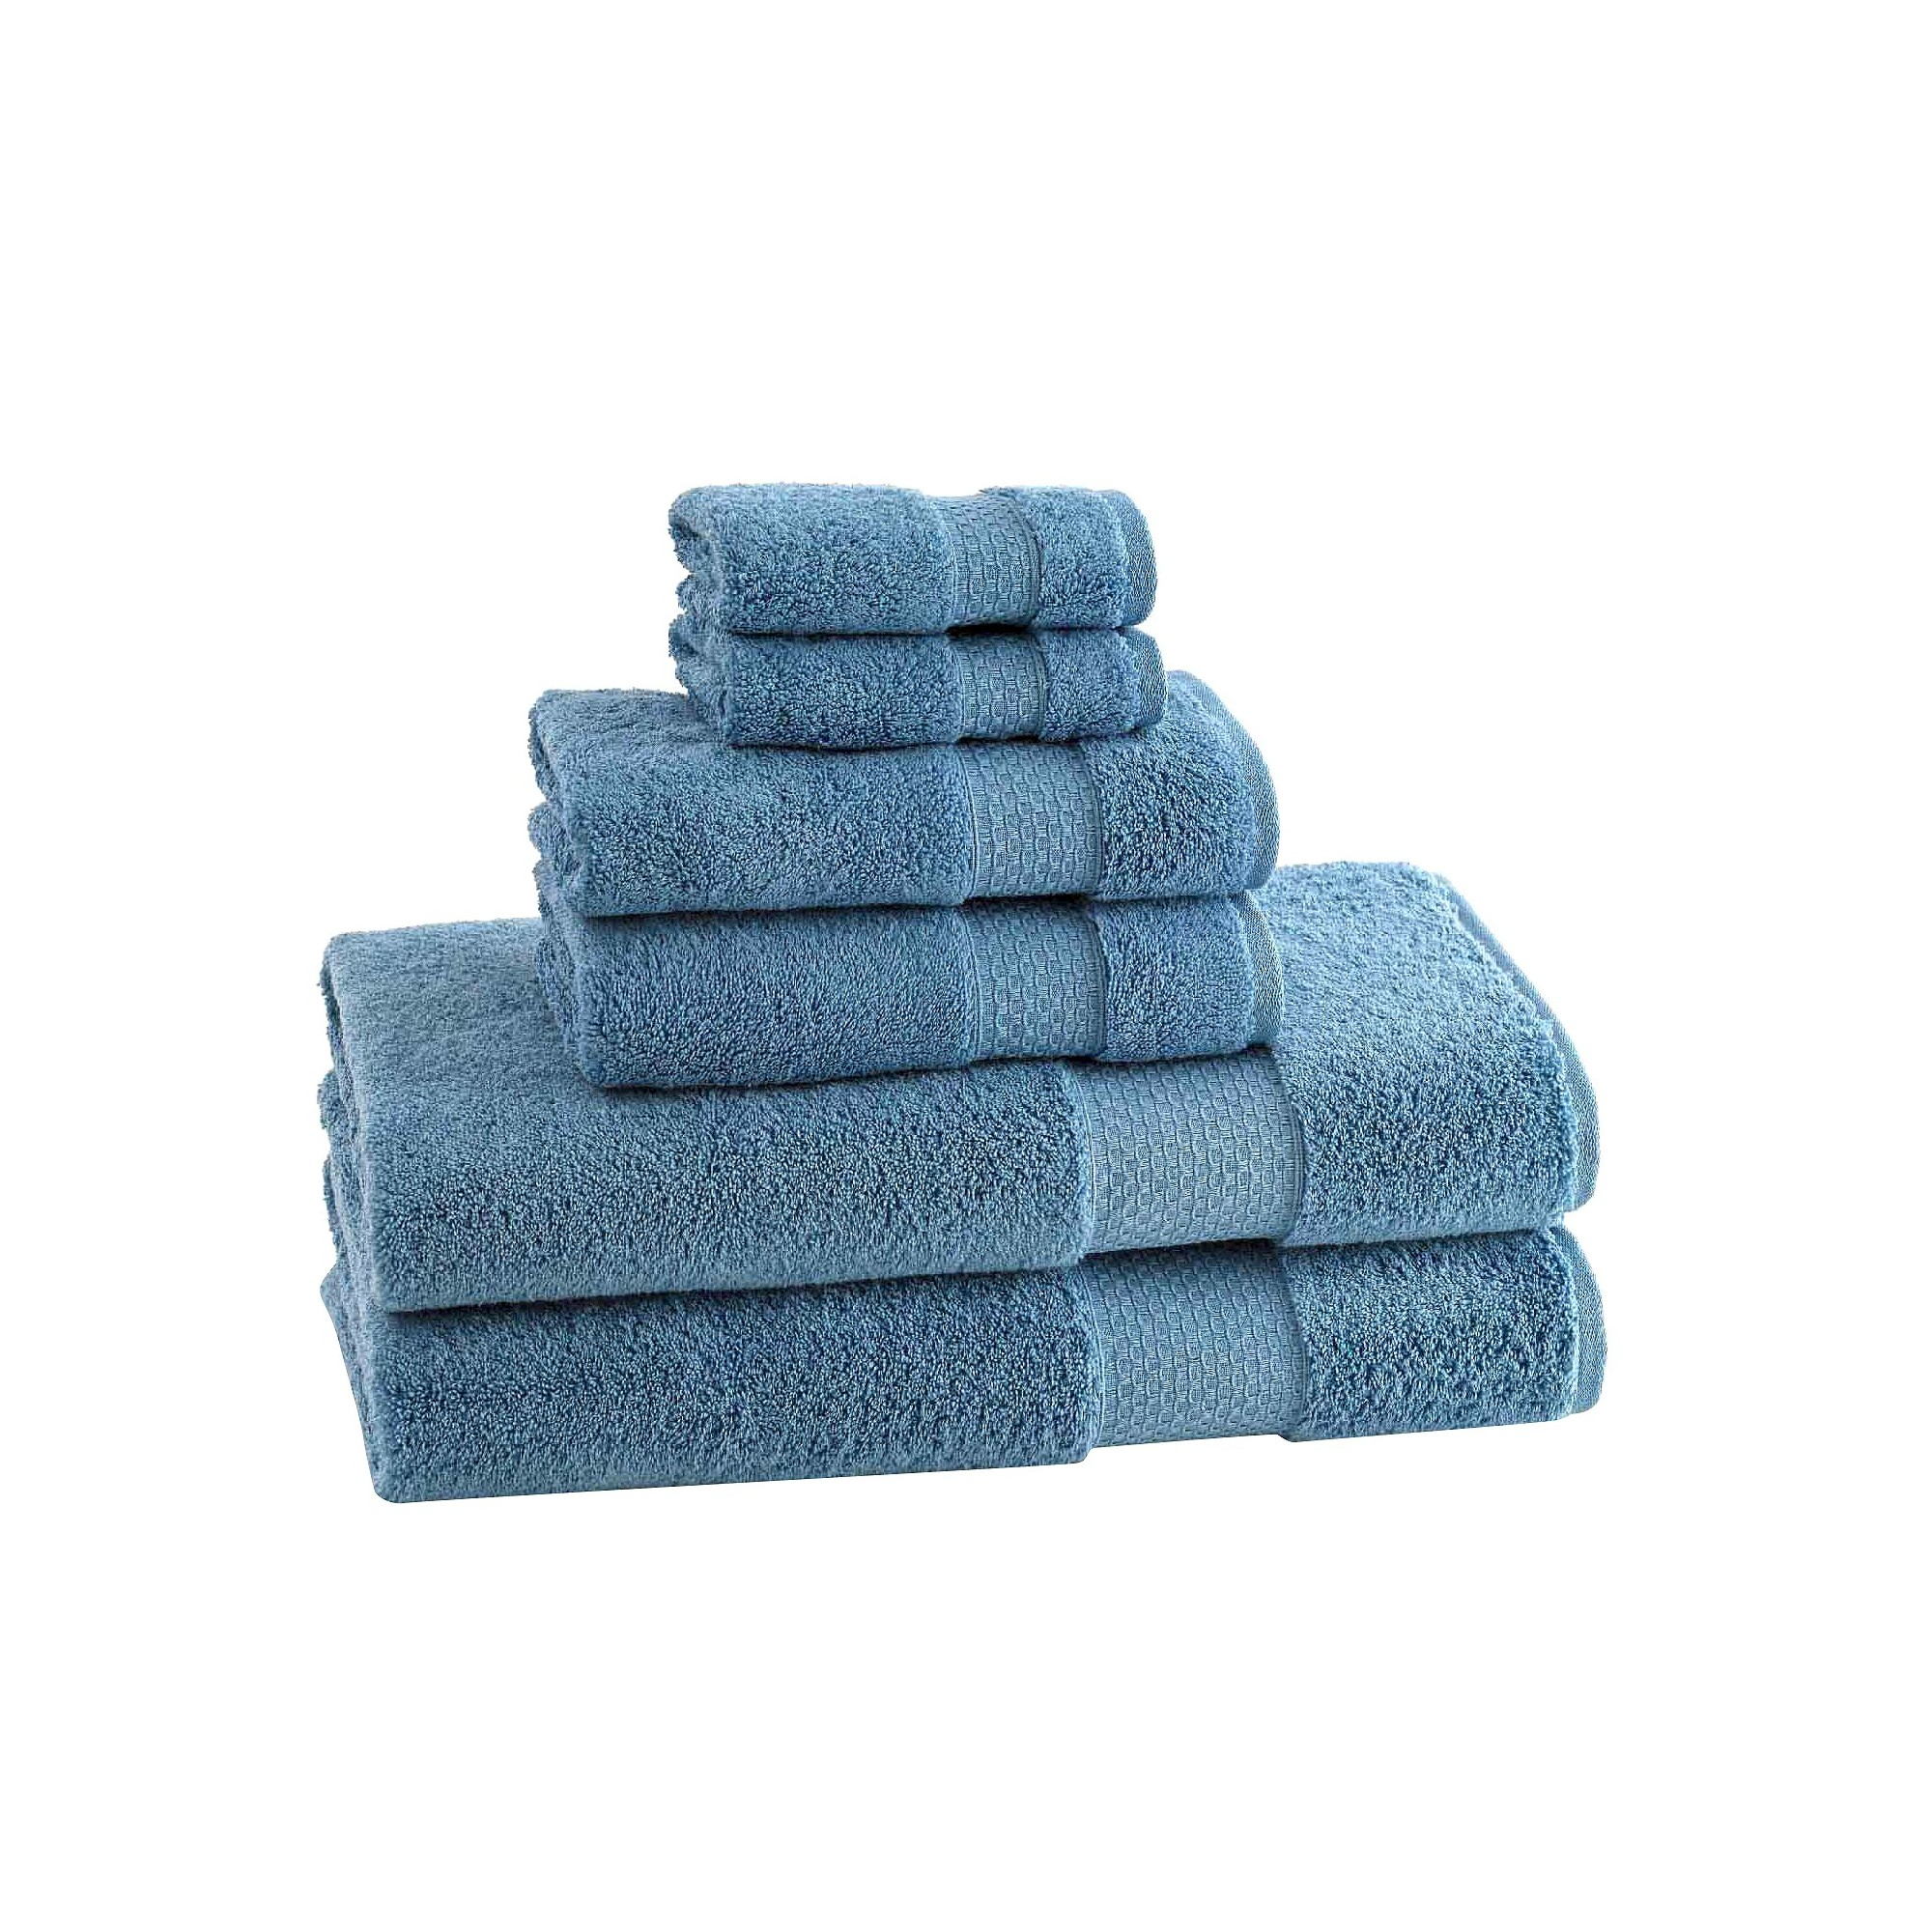 Katex Elegance Turkish Cotton 6pc